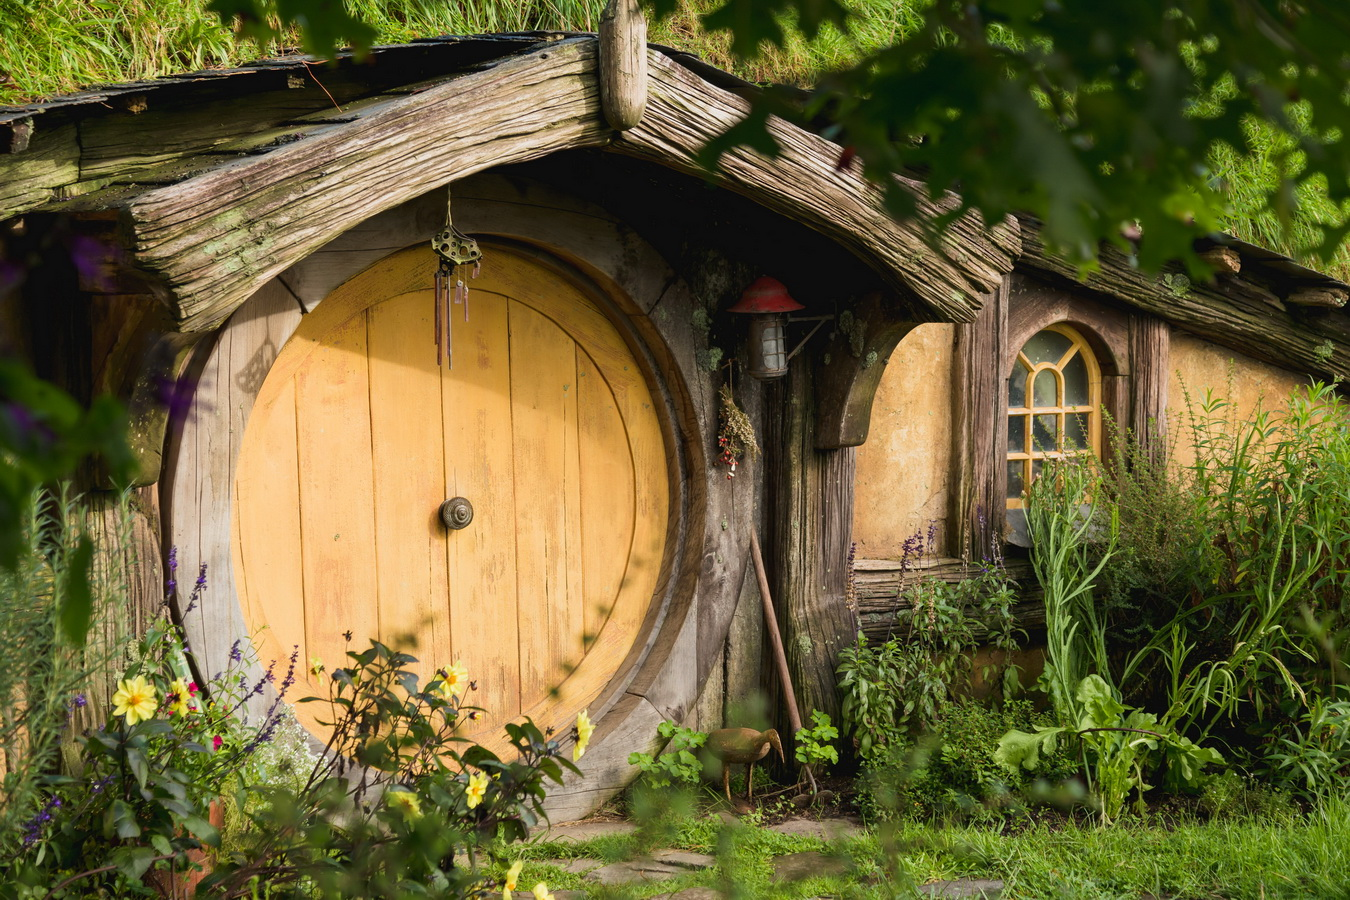 yellow house,The Hobbiton, The Shire,Хоббитшир, Удел, Хоббитания, Заселье, Край,Matamata, North Island ,New Zealand